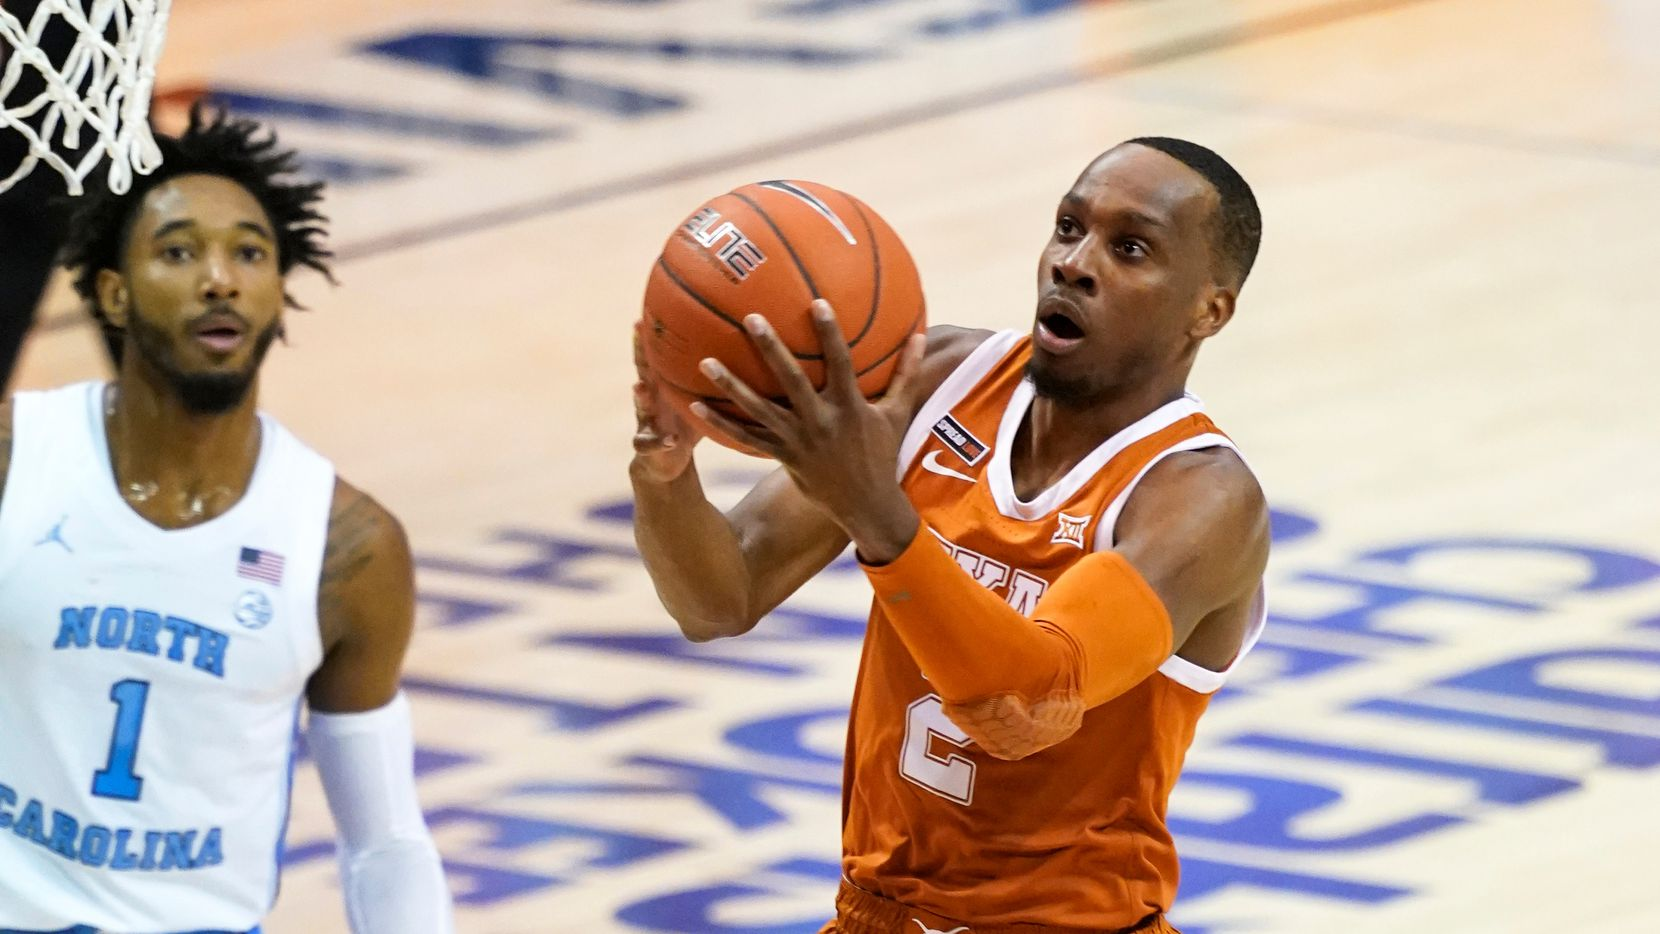 Texas guard Matt Coleman III (2) drives the ball to the basket past North Carolina guard R.J. Davis (4) and North Carolina guard Leaky Black (1) in the first half an NCAA college basketball game for the championship of the Maui Invitational, Wednesday, Dec. 2, 2020, in Asheville, N.C.